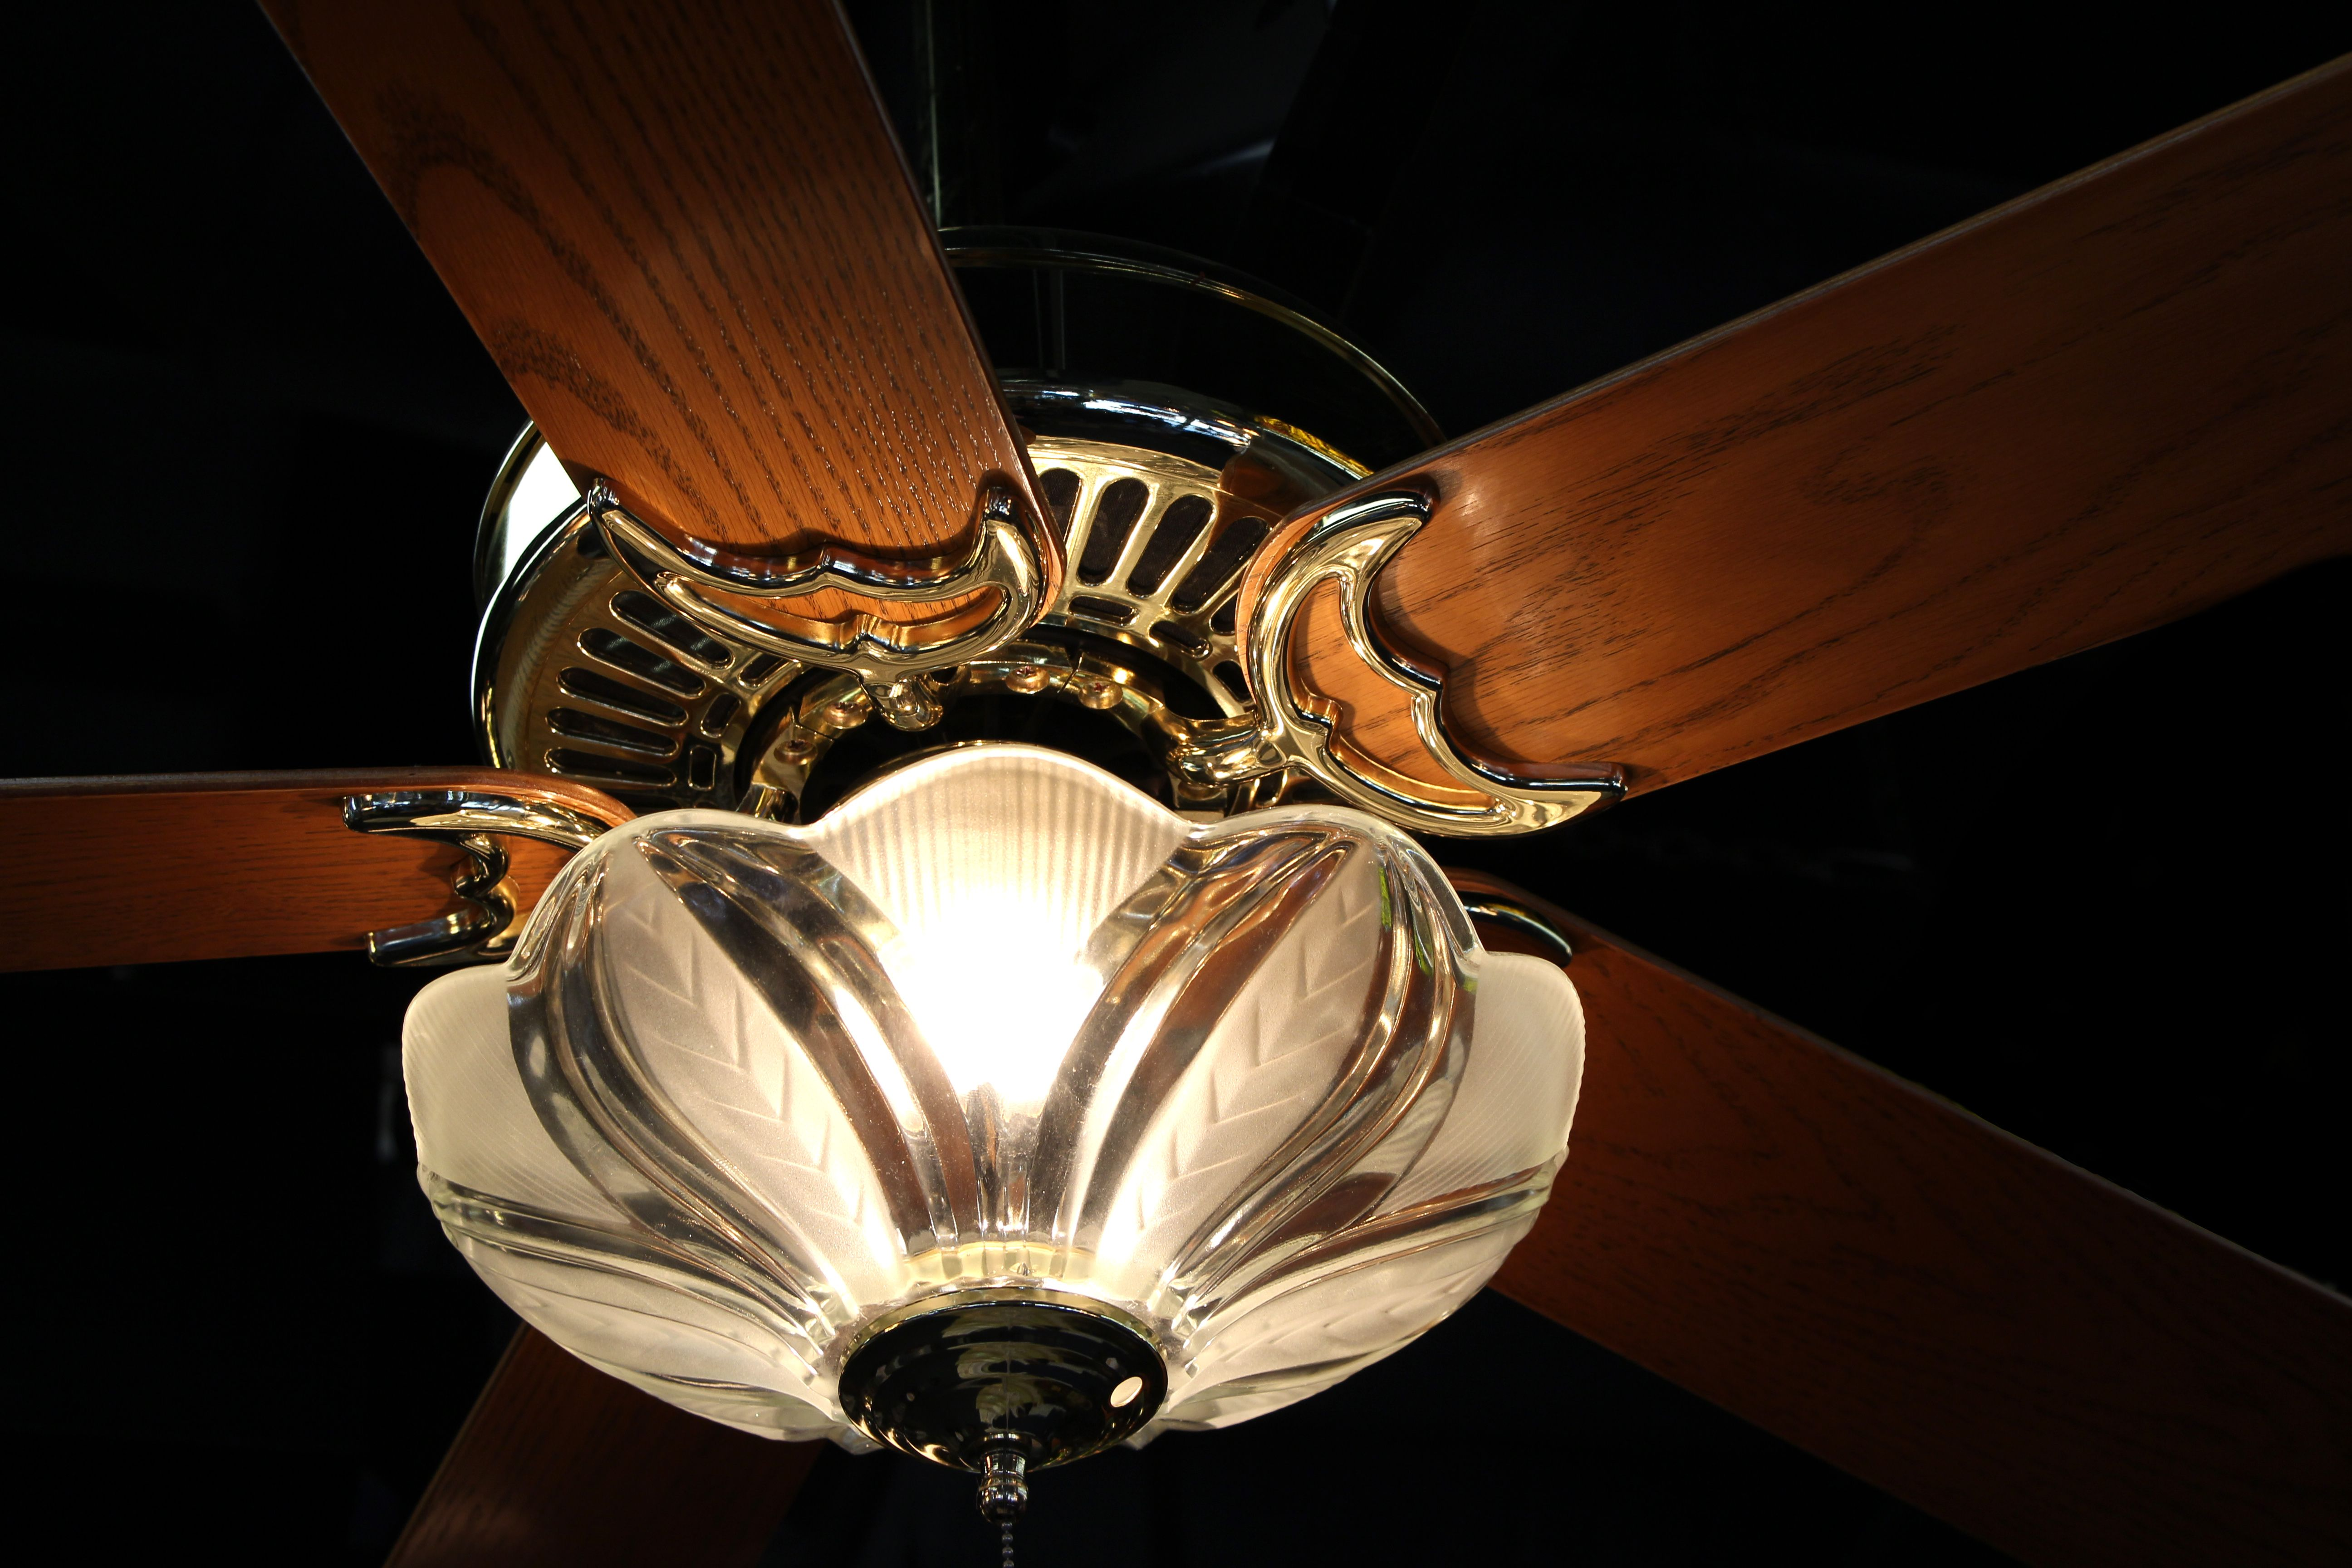 panama by casablanca the traditional styling works with virtually any setting custom design your ad ceiling fan fans bowl light which way does a spin